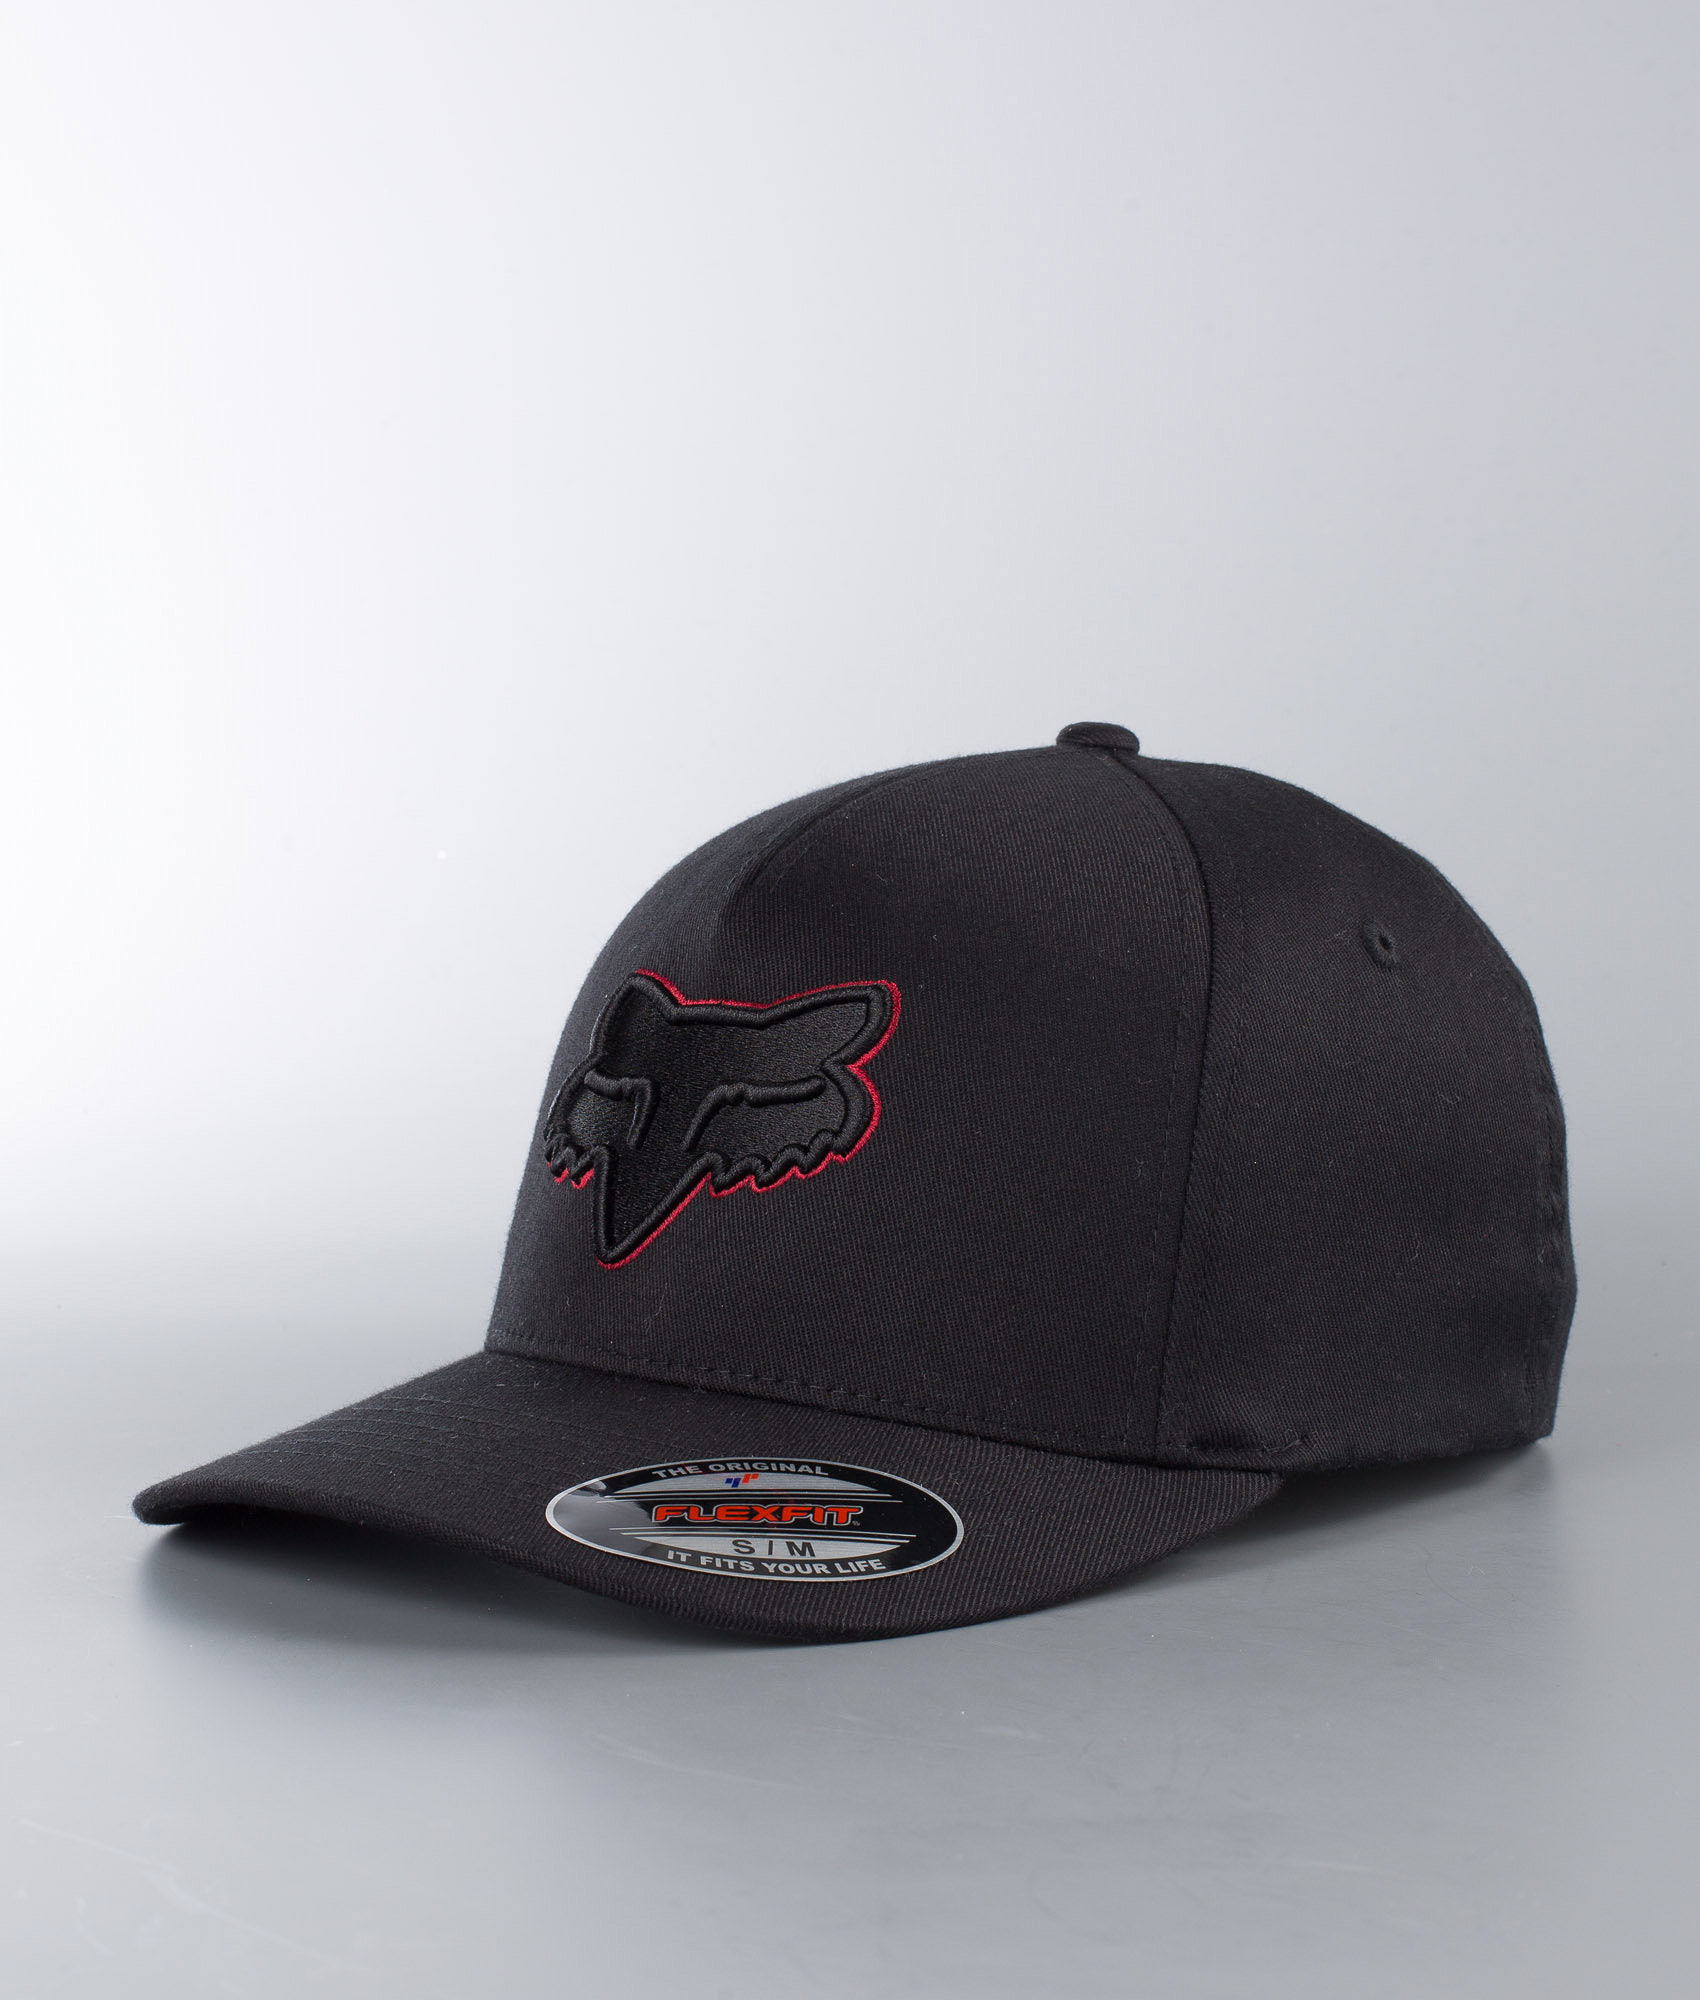 0a771270f Fox Epicycle Flexfit Cap Black - Ridestore.com